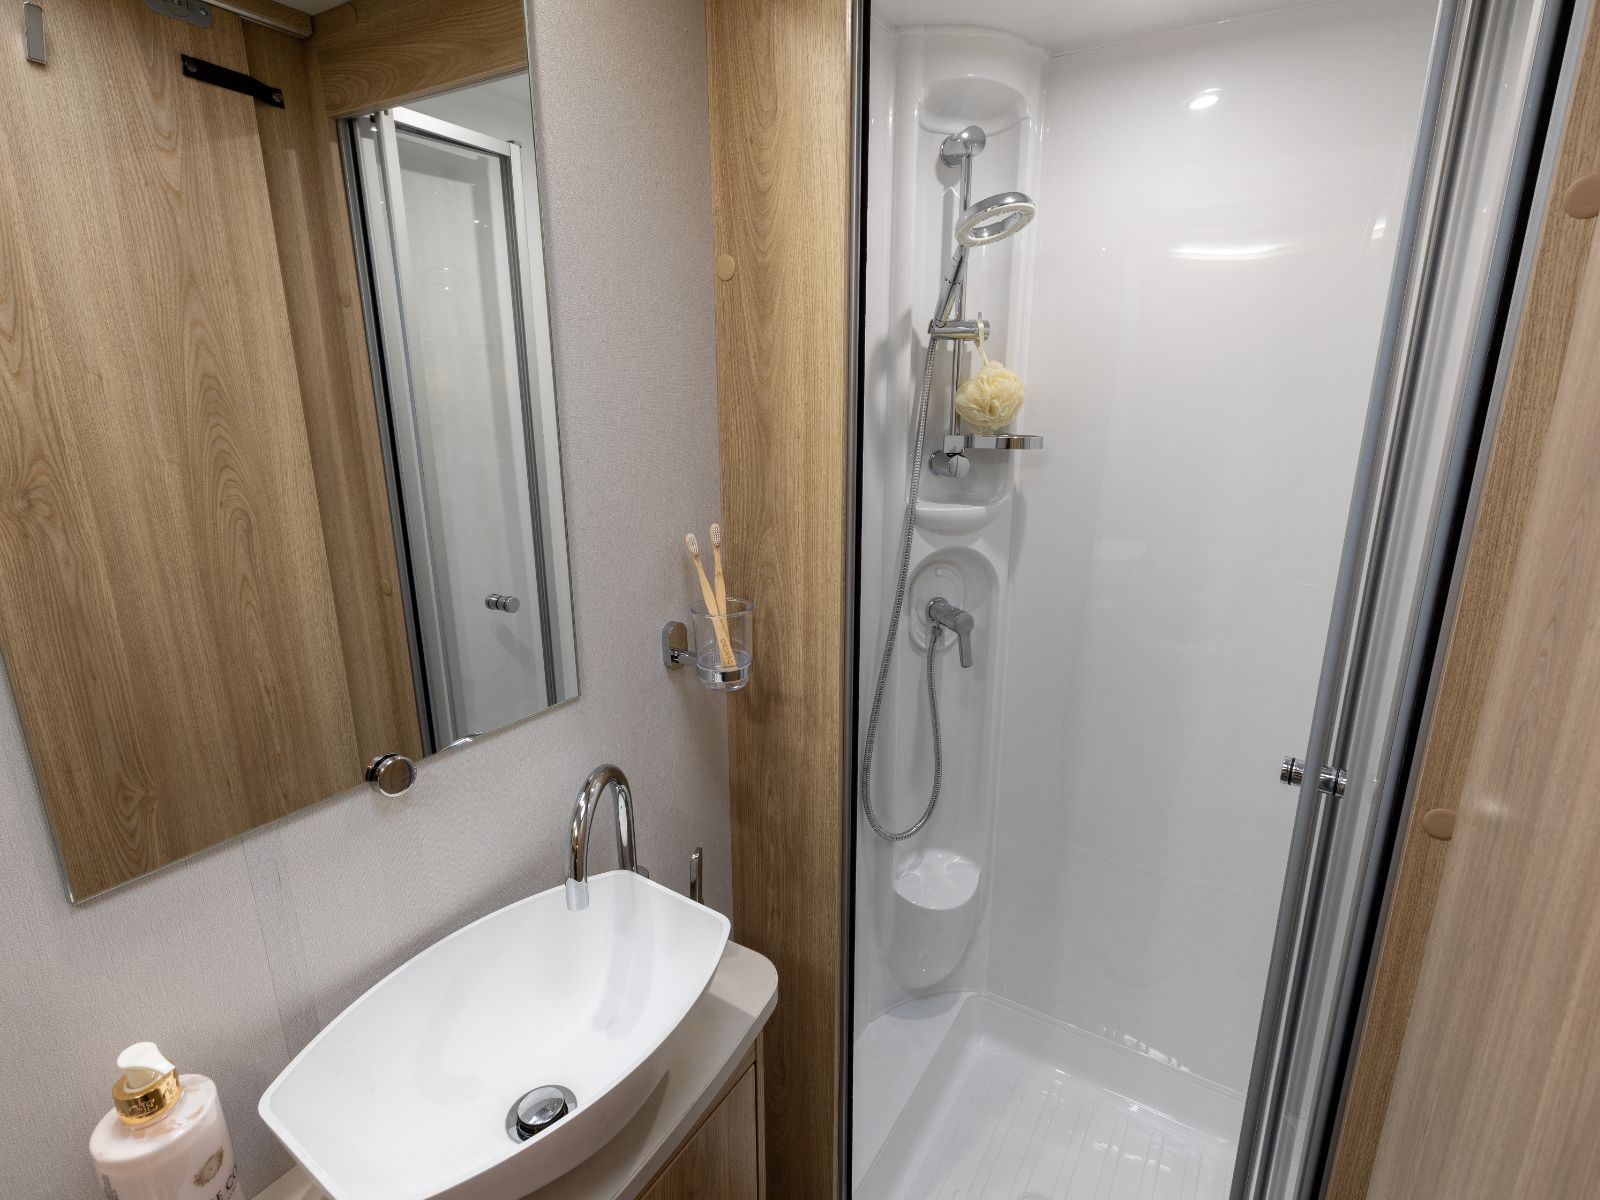 Bathroom layout with shower and sink with mirror above'